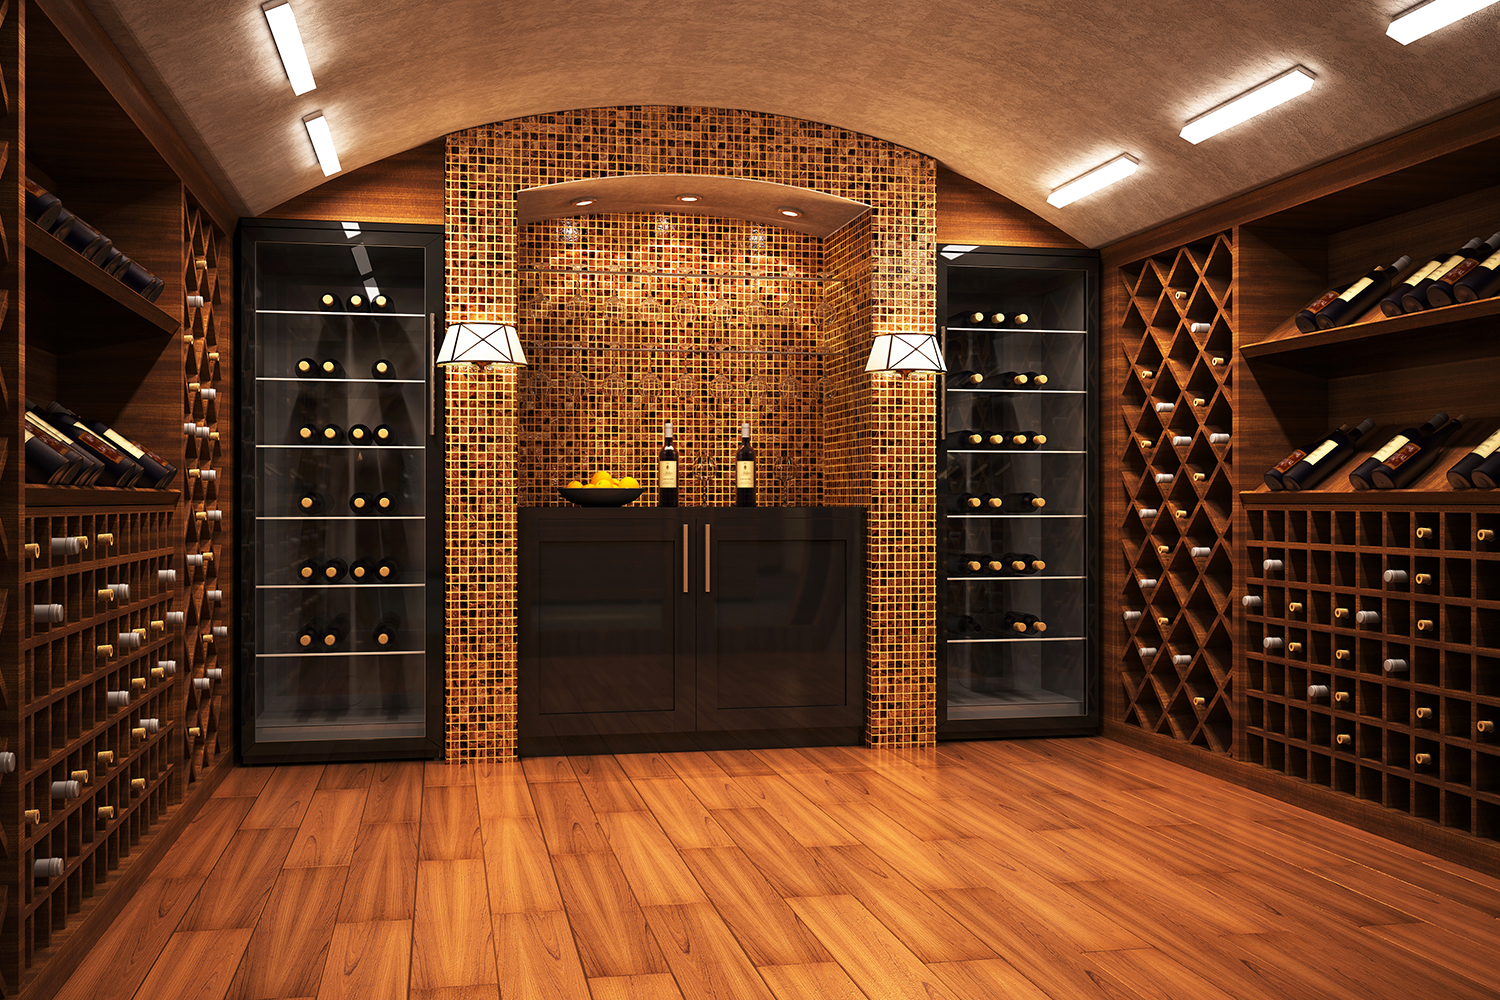 interior of a wine cellar for storing and aging of wine